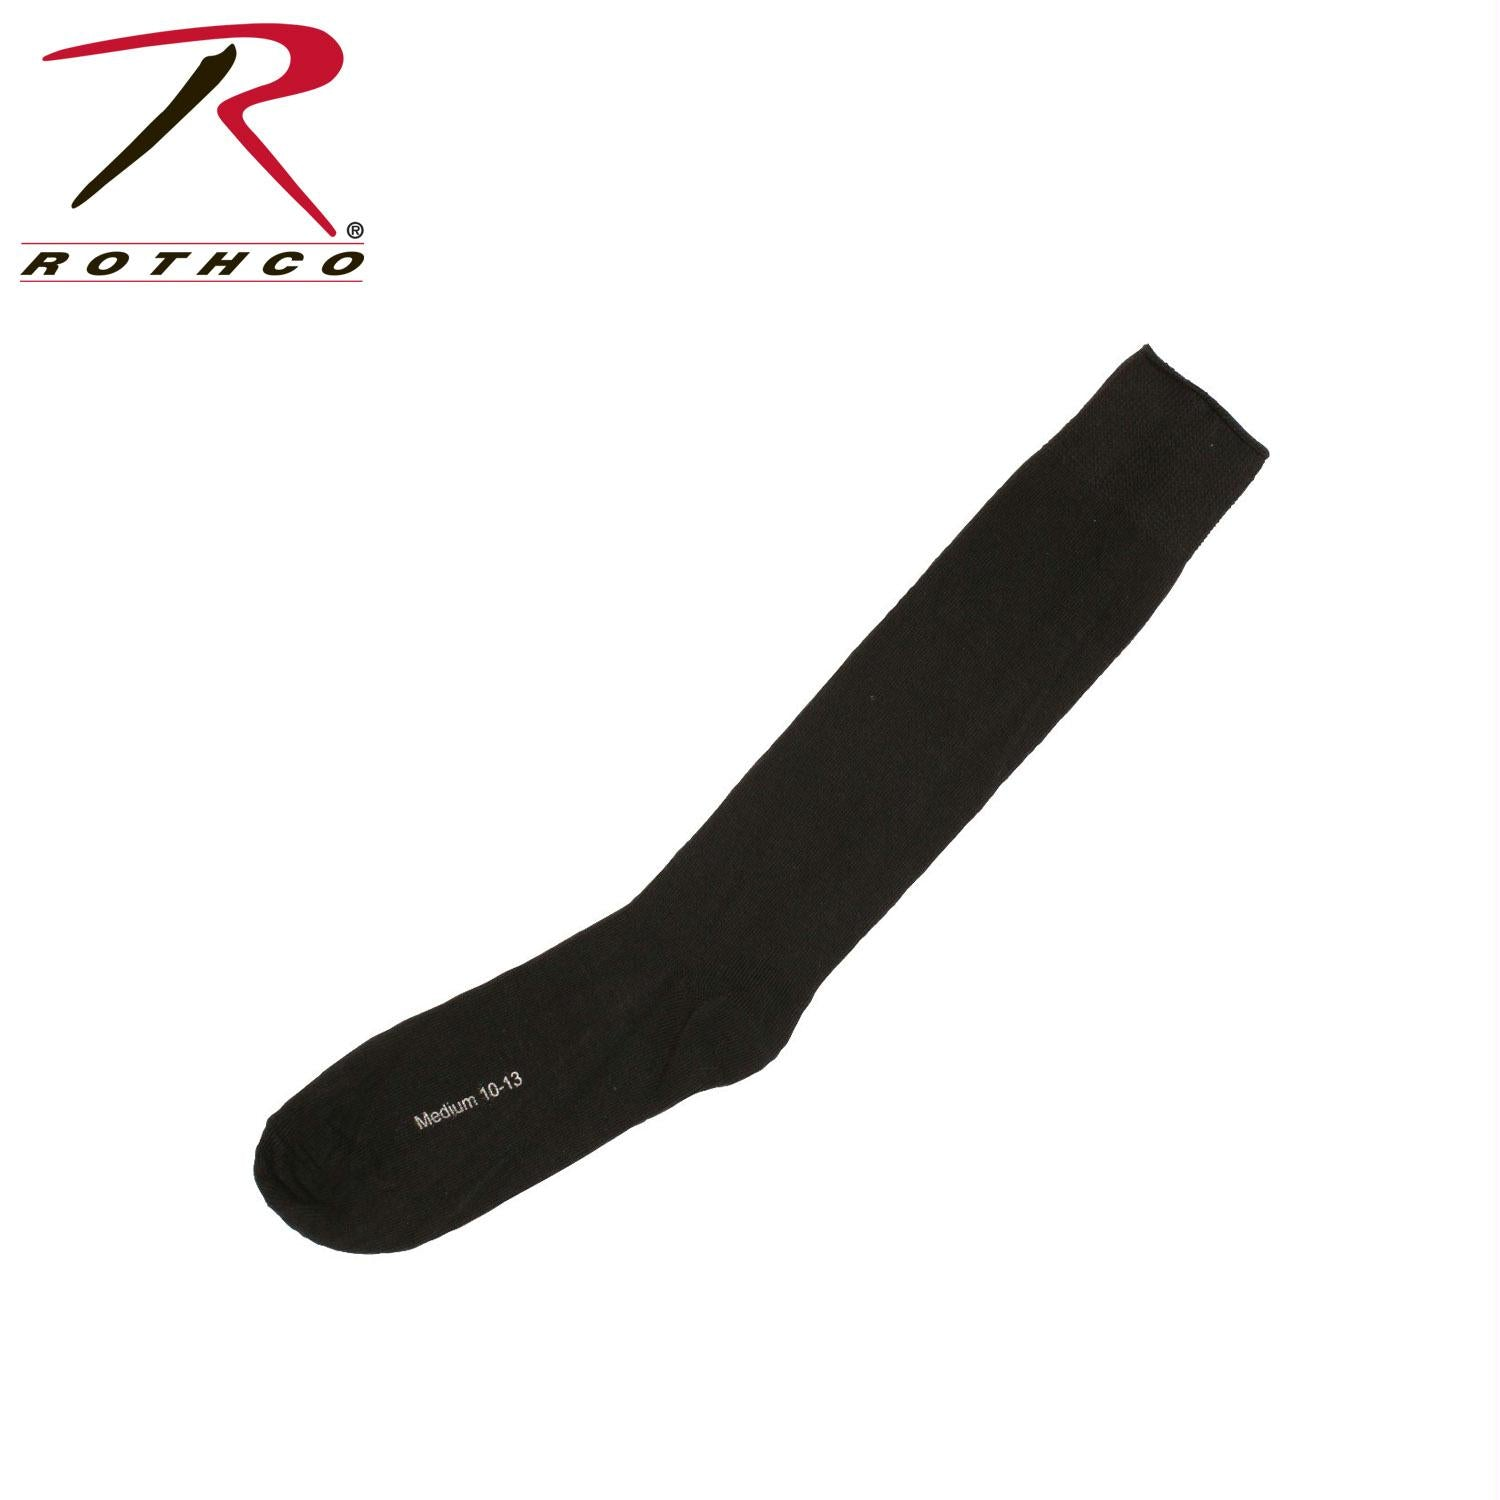 Rothco Black Irregular Polypropylene Socks - L